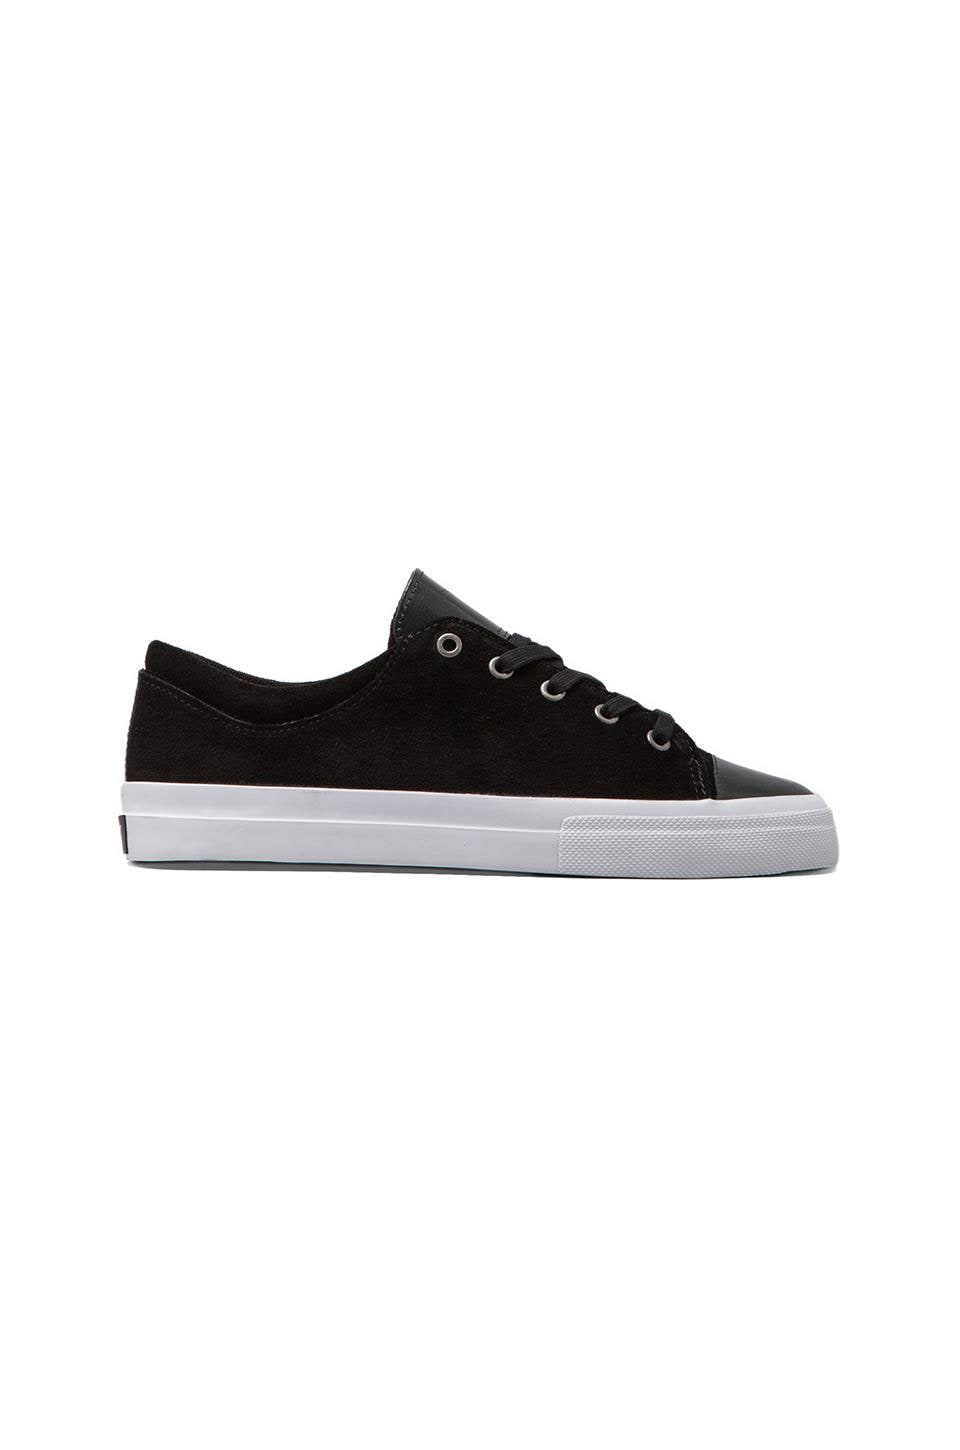 Creative Recreation Forlano in Black/Black